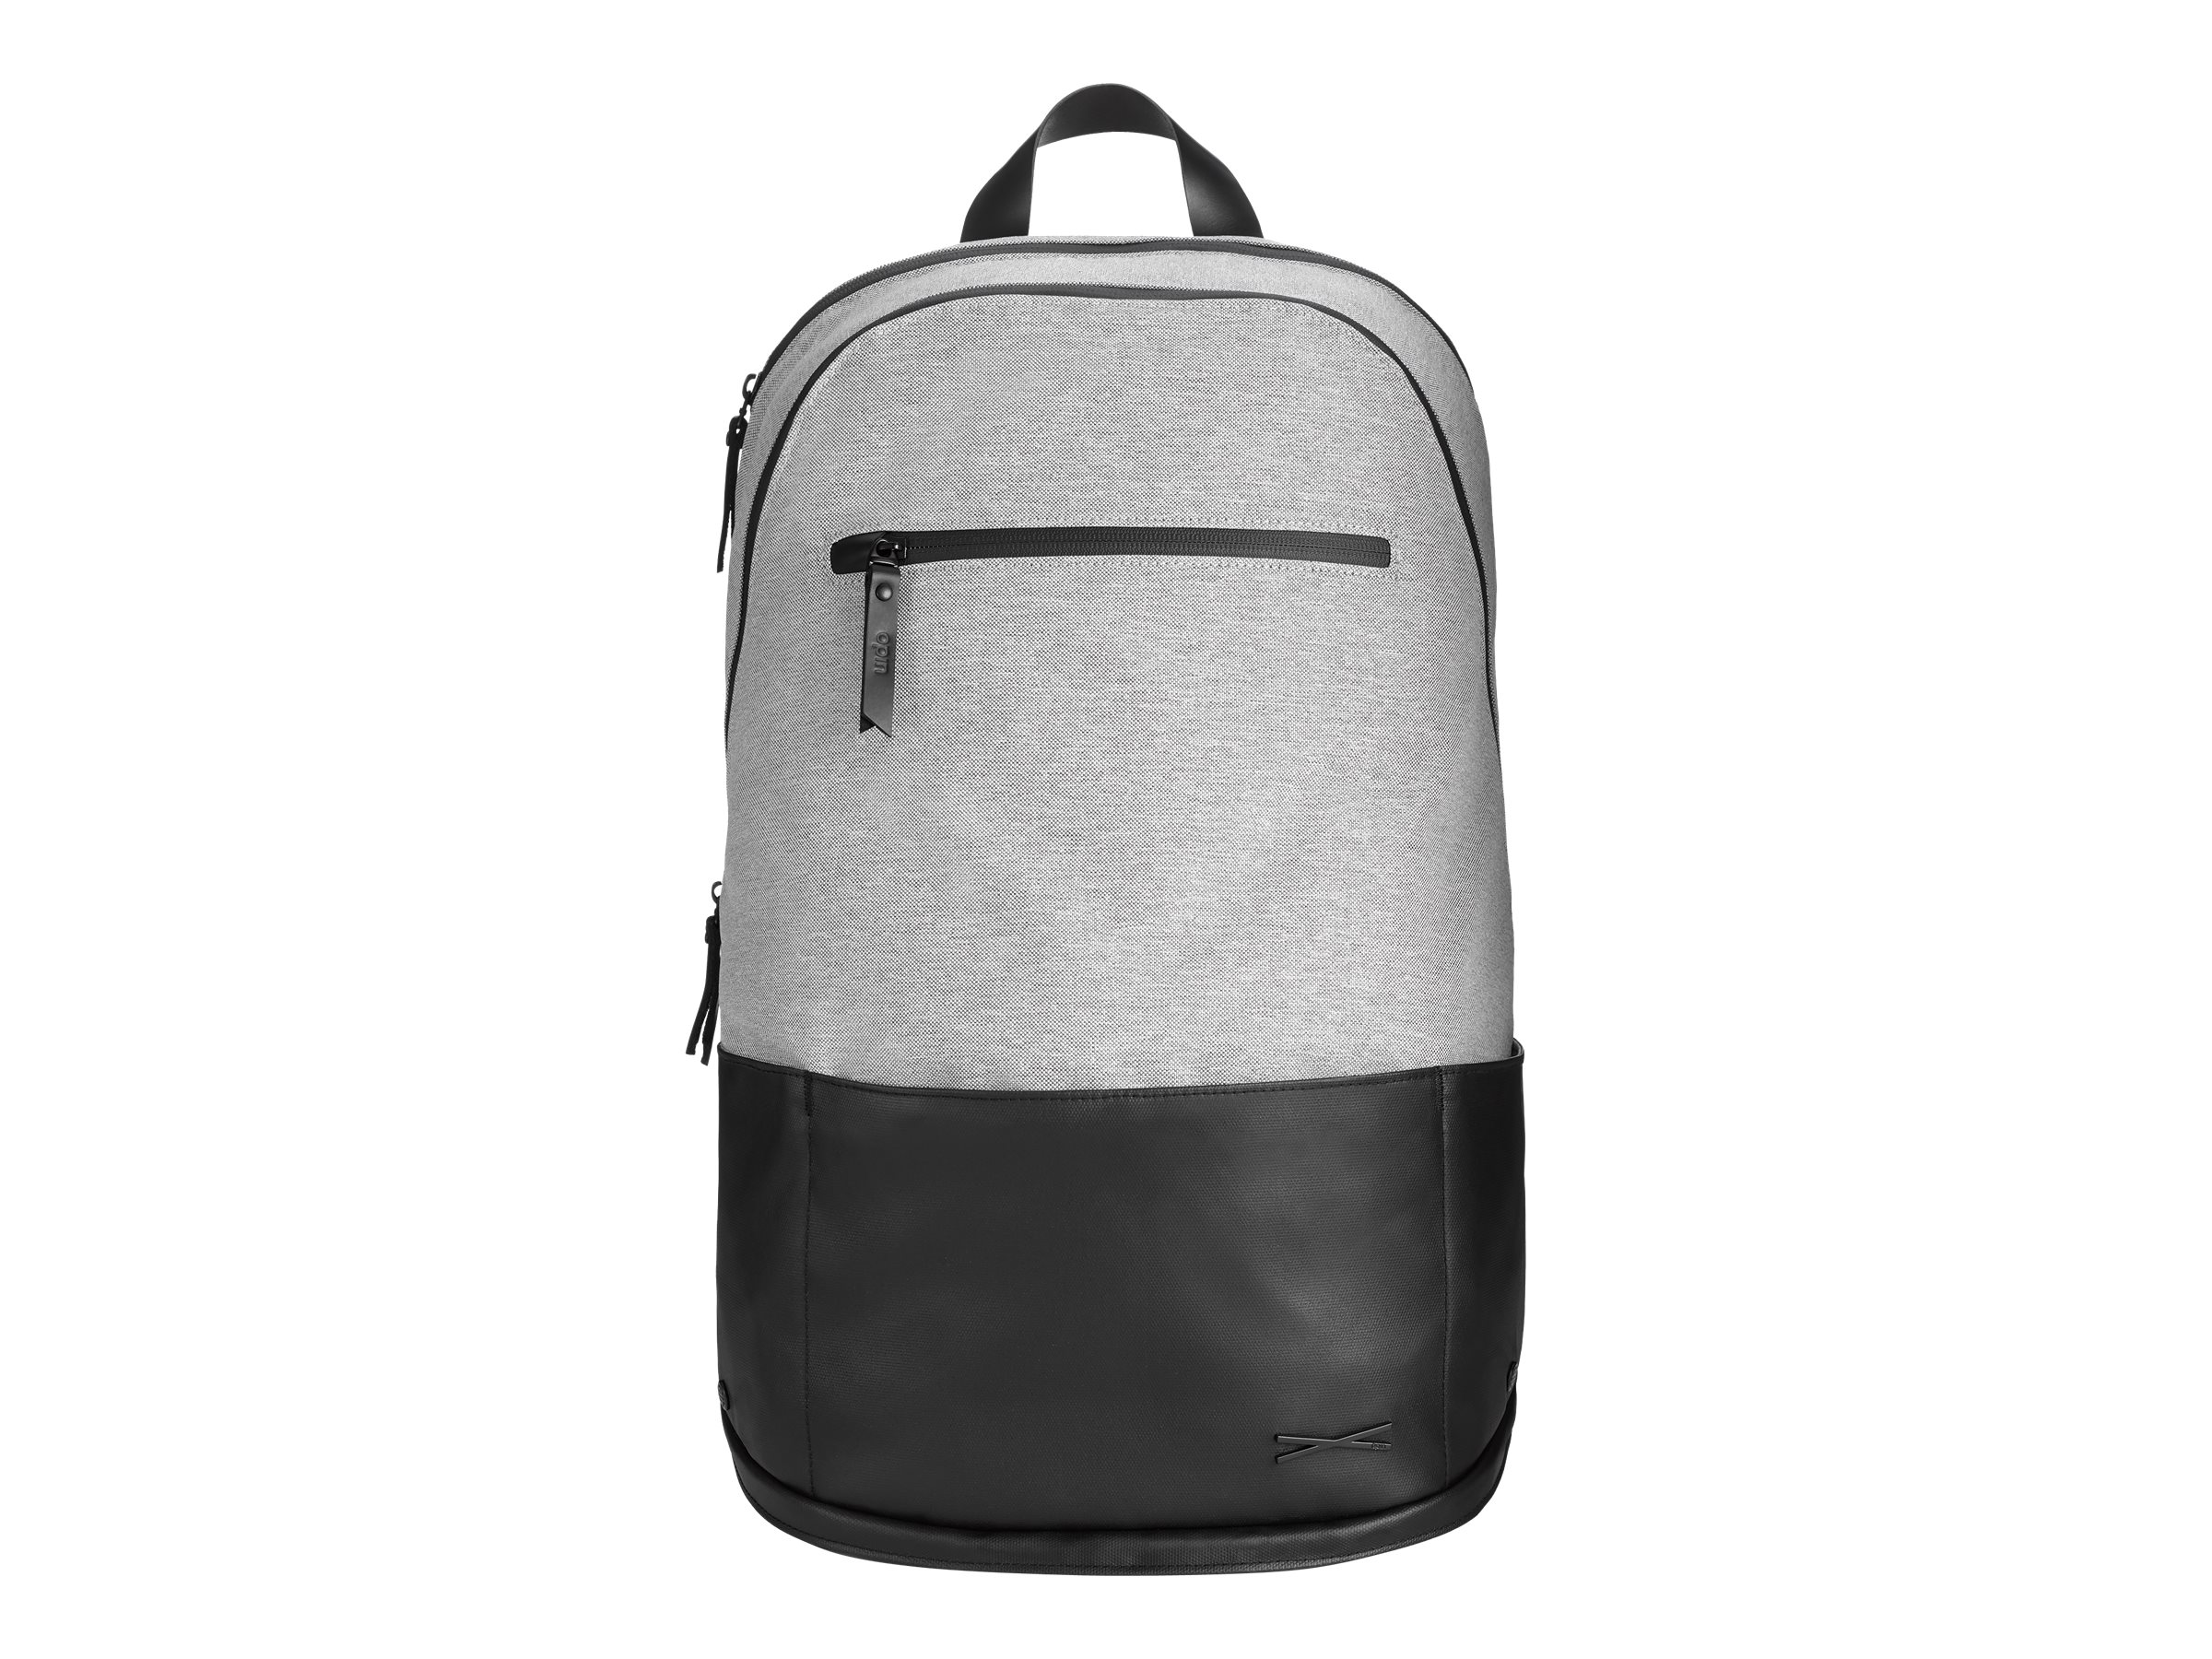 Targus Opin Maker Pack Notebook Carrying Backpack, Gray Slate